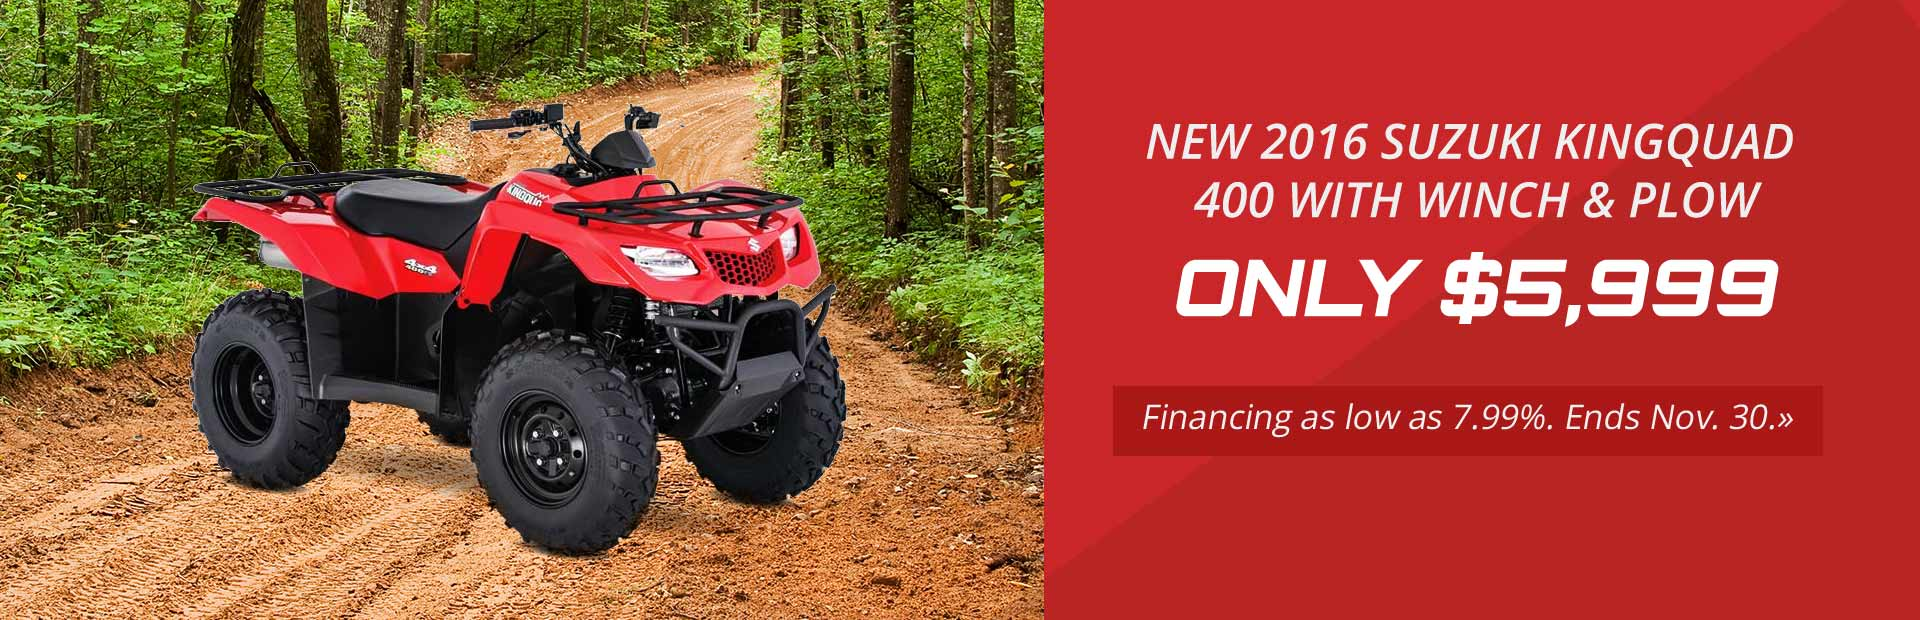 Get a new 2016 Suzuki KingQuad 400 with winch and plow for only $5,999, plus get financing as low as